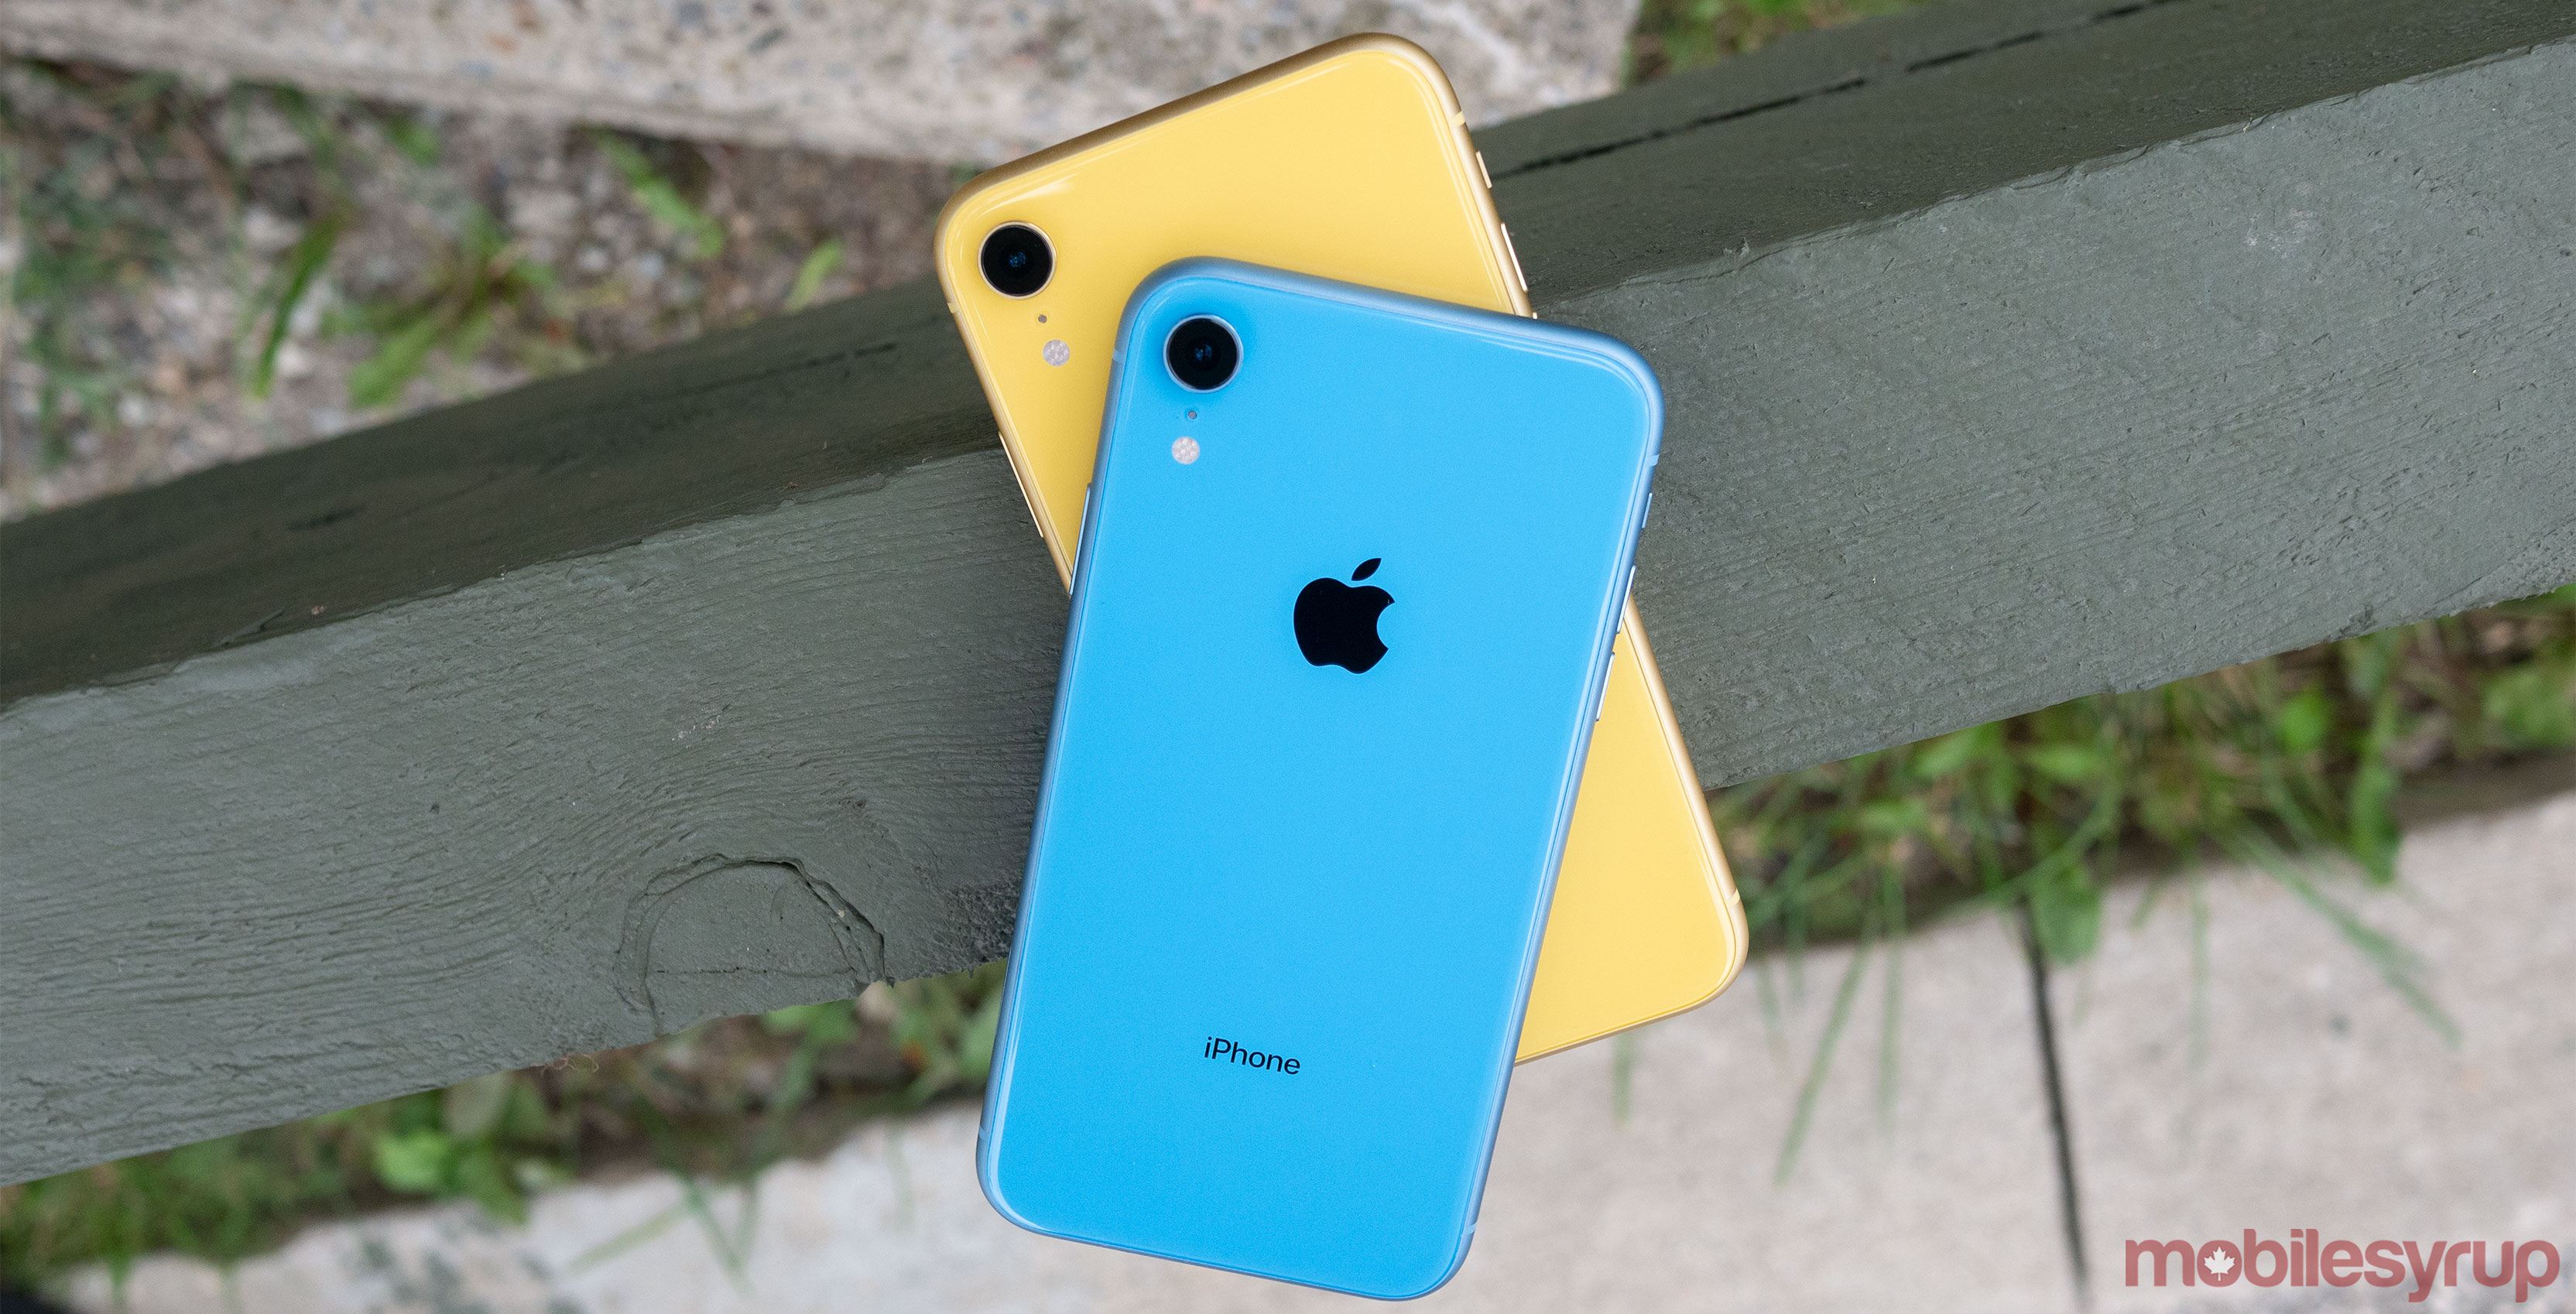 Freedom offering $0 iPhone XR on $55/15GB plan to Rogers and Fido customers